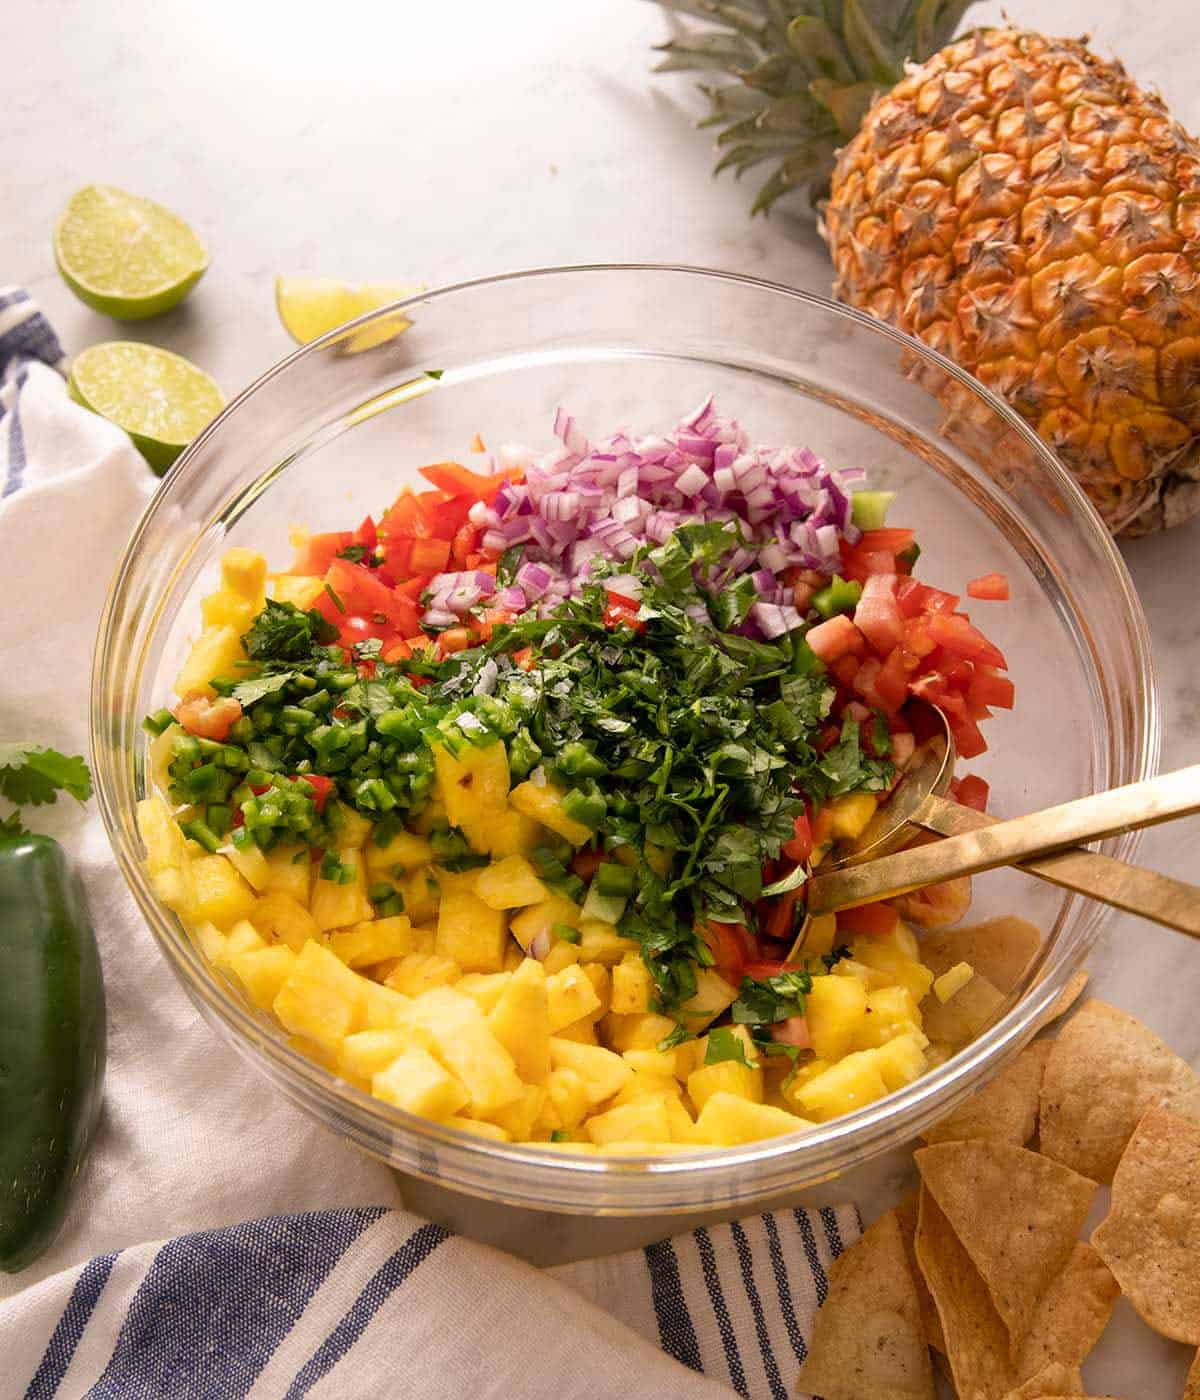 Pineapple salsa ingredients in a large mixing bowl